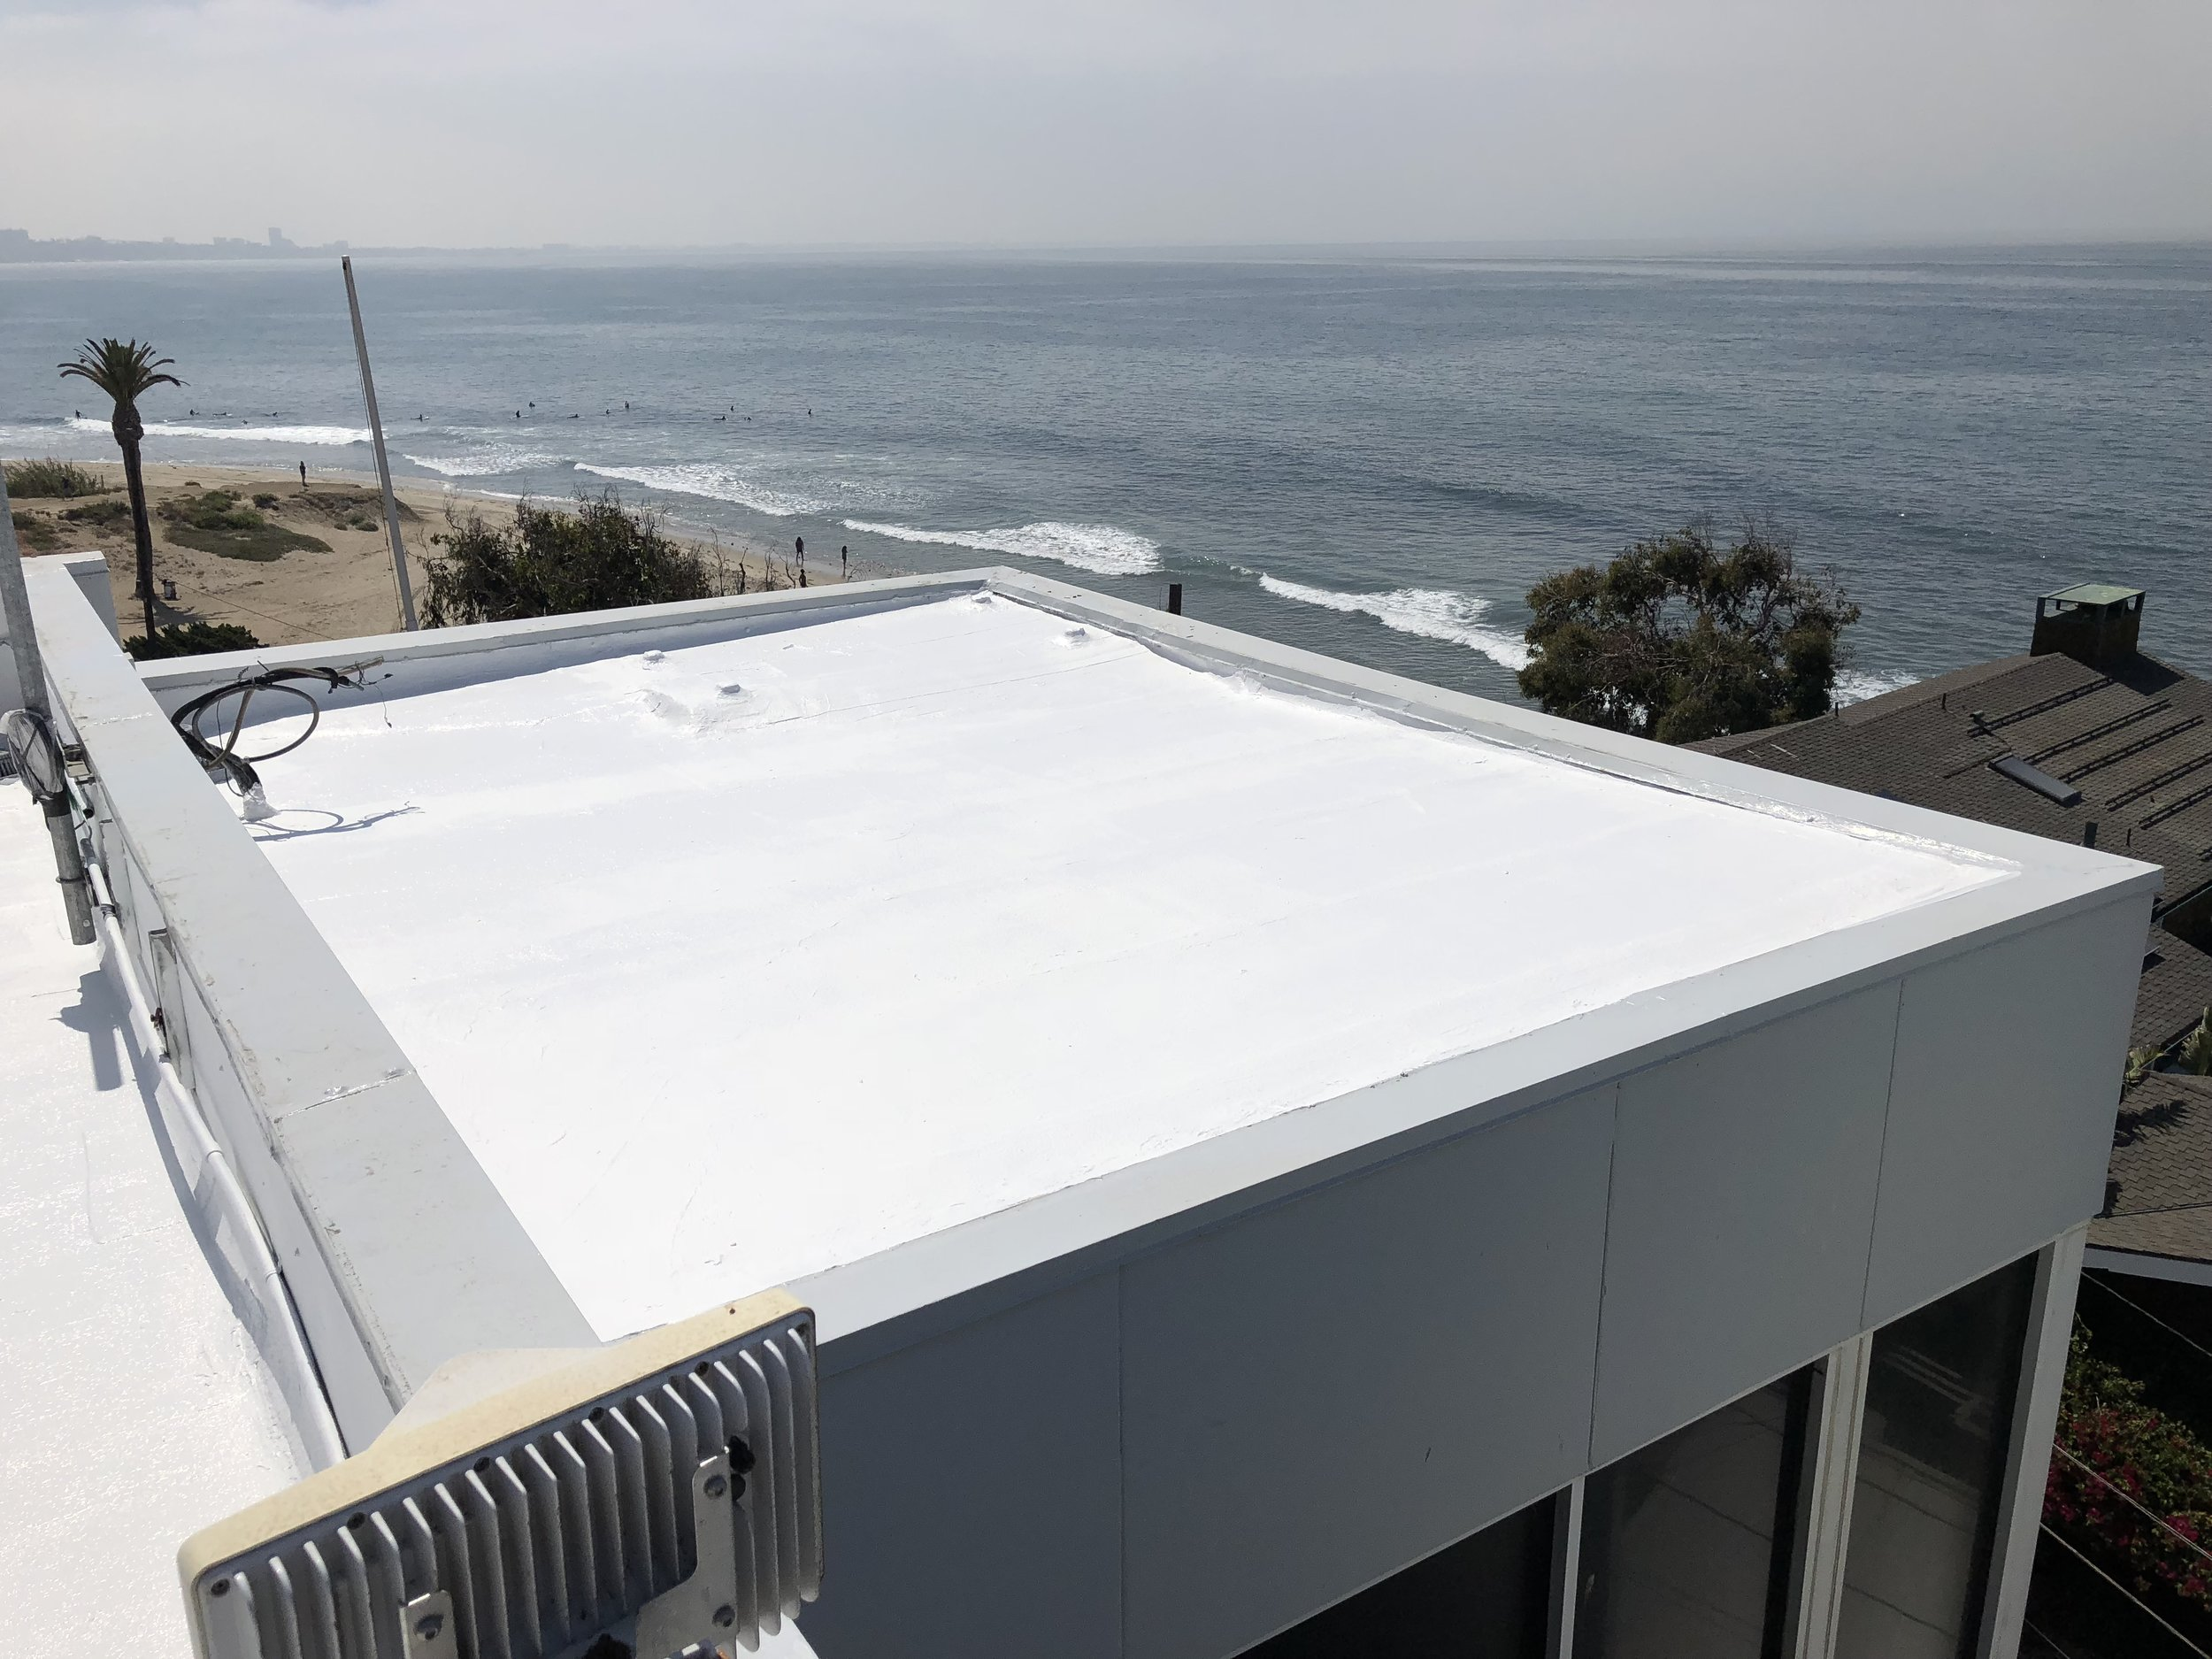 Roof coating on Malibu surf shop 2